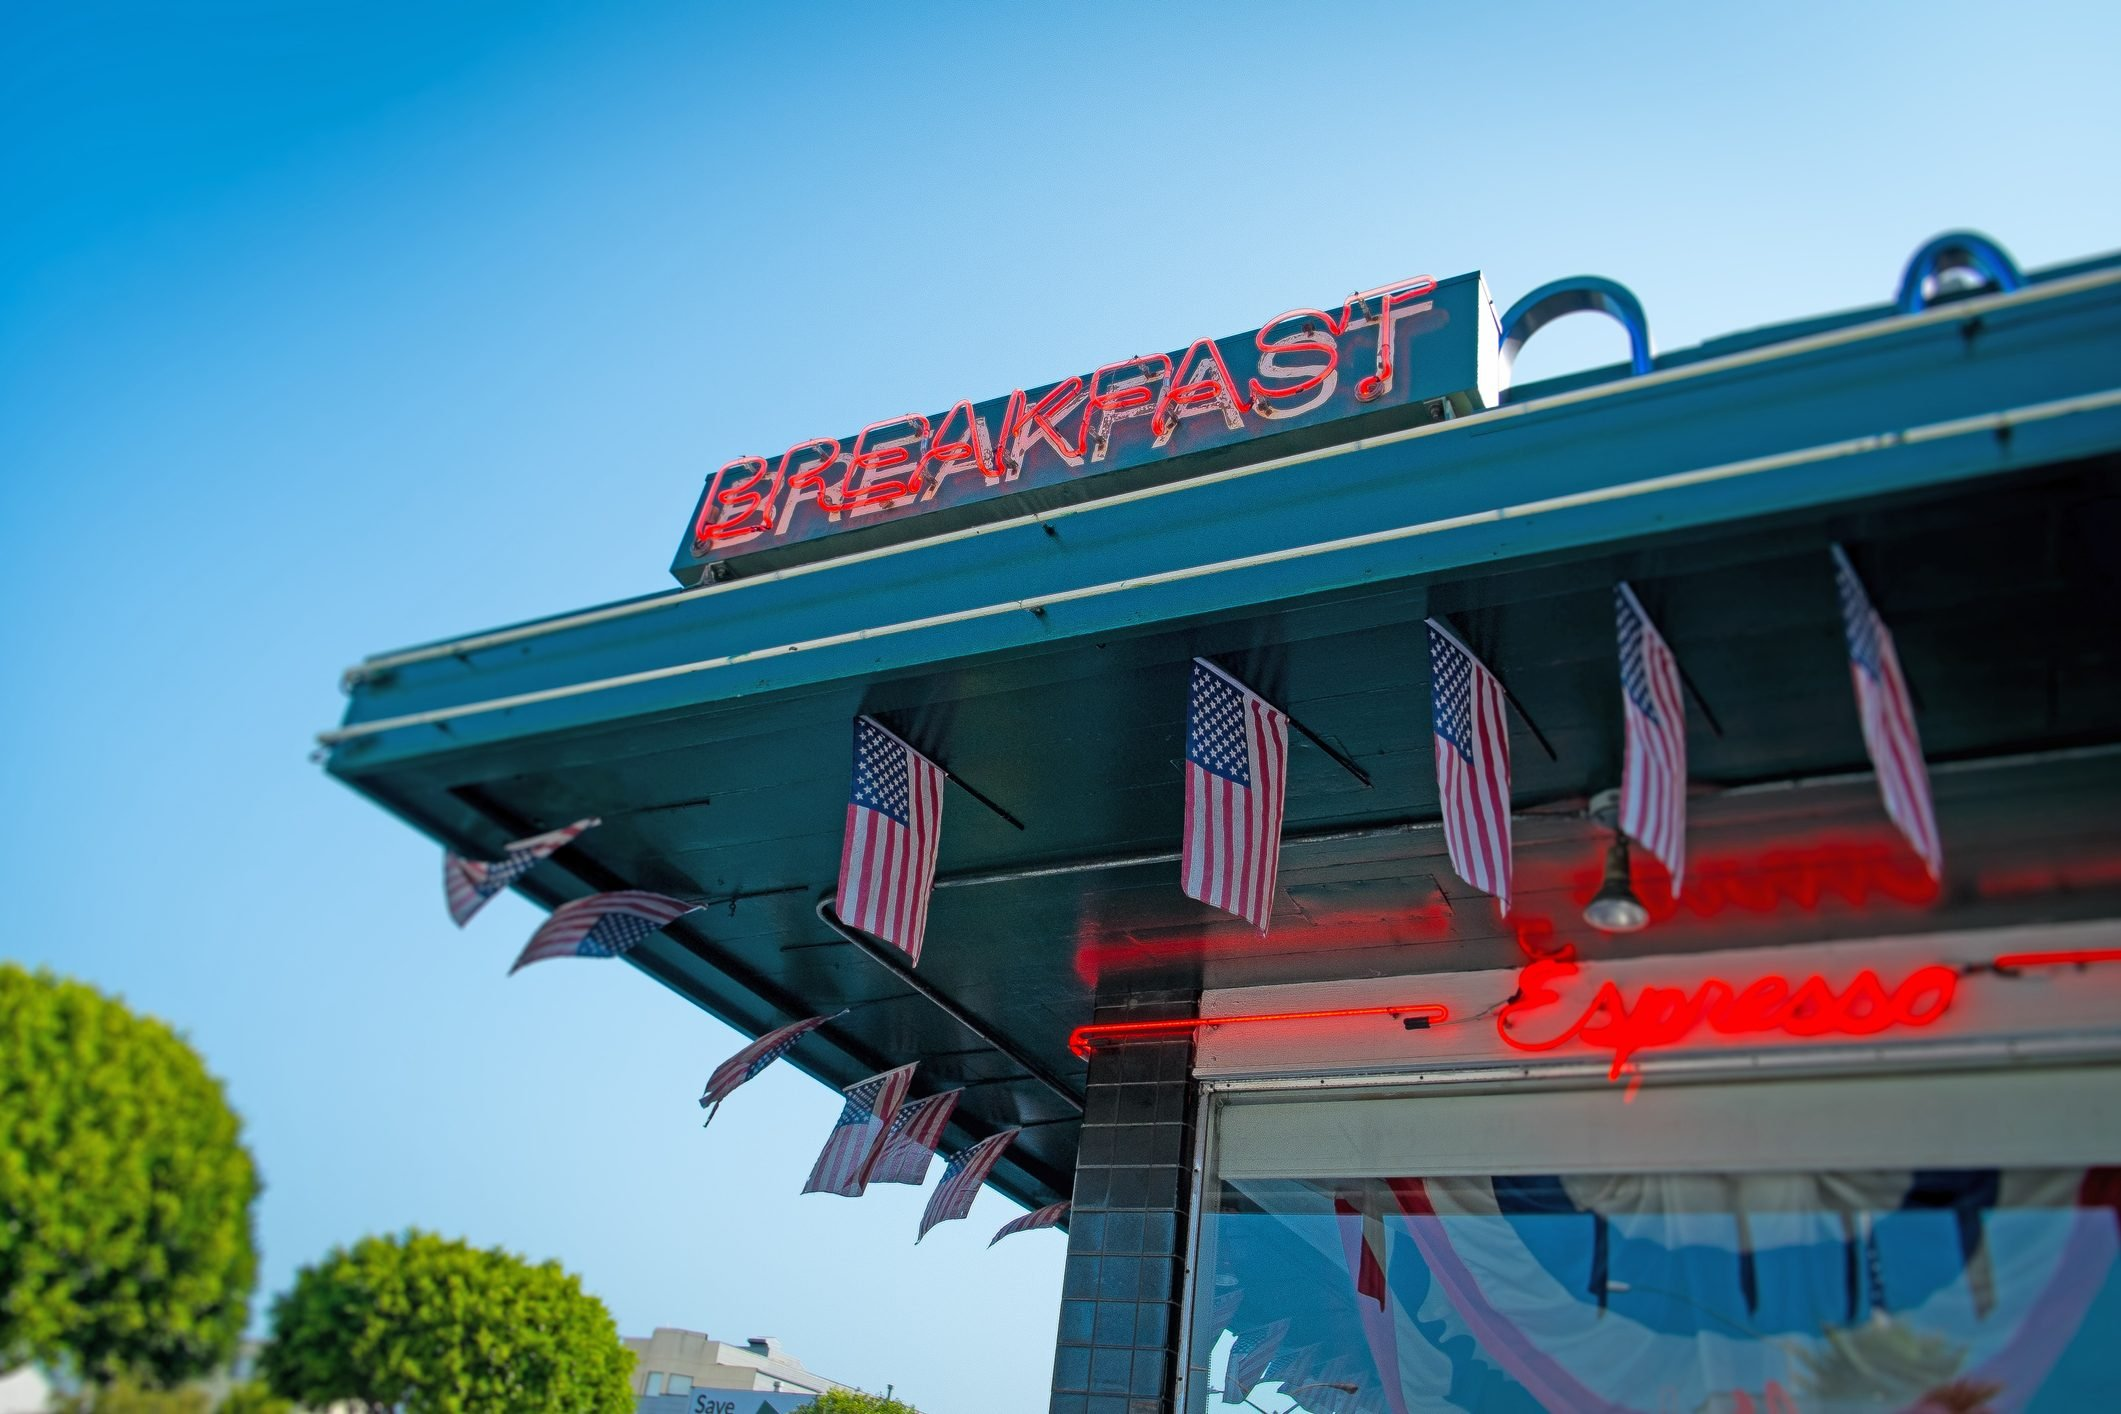 Low angle view of breakfast sign on diner, San Francisco, California, USA